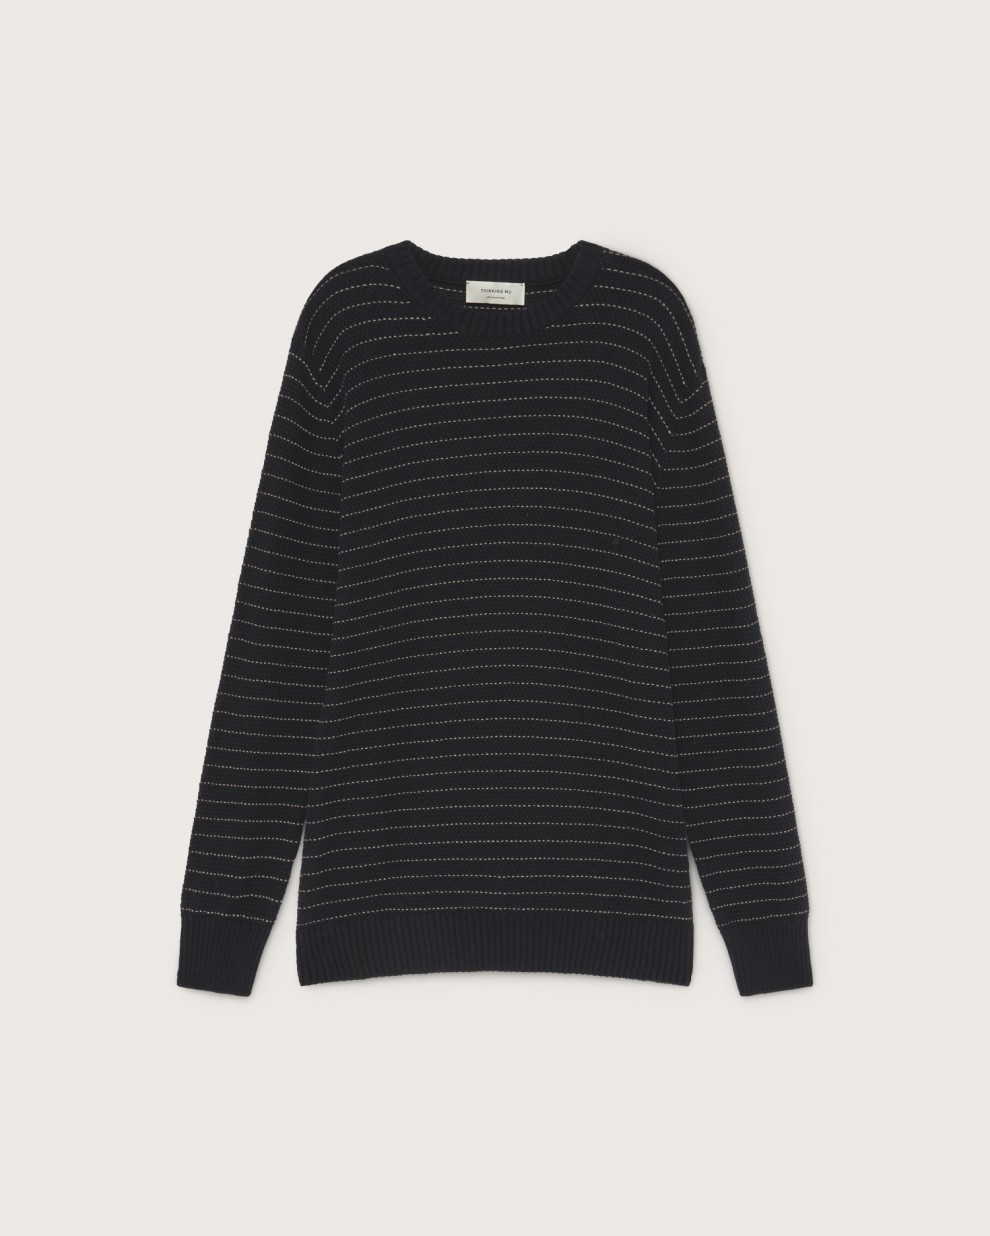 Blue Miki knitted sweater